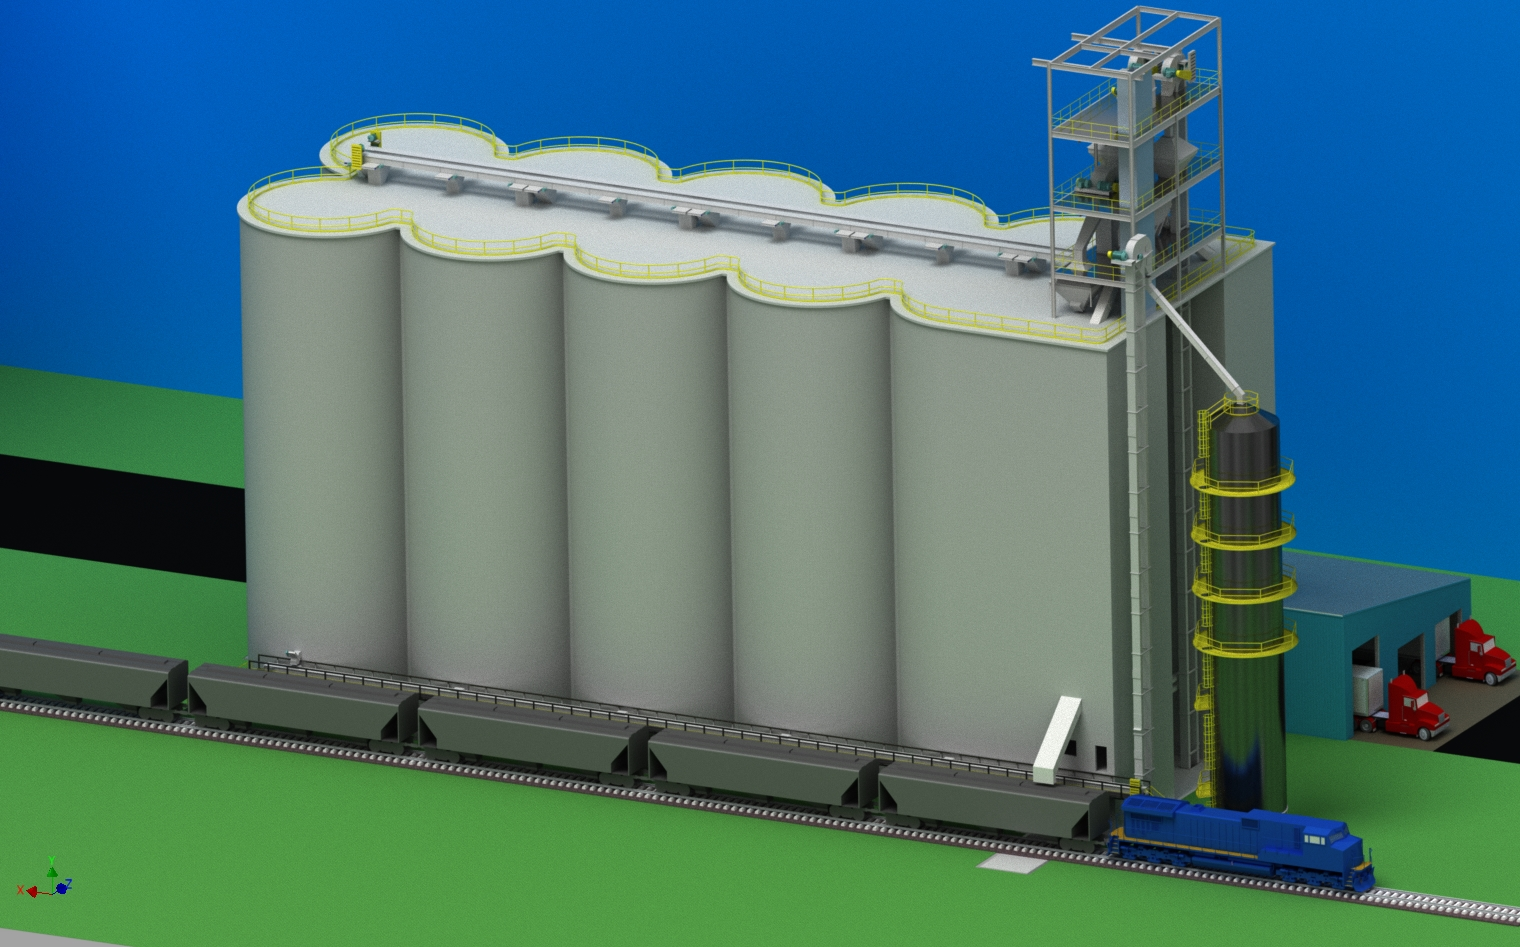 Concrete Slipform Grain Elevator 110 Rail Car Shuttle loading of corn, soybeans, wheat, canola, barley 10,000 BPH Grain Dryer